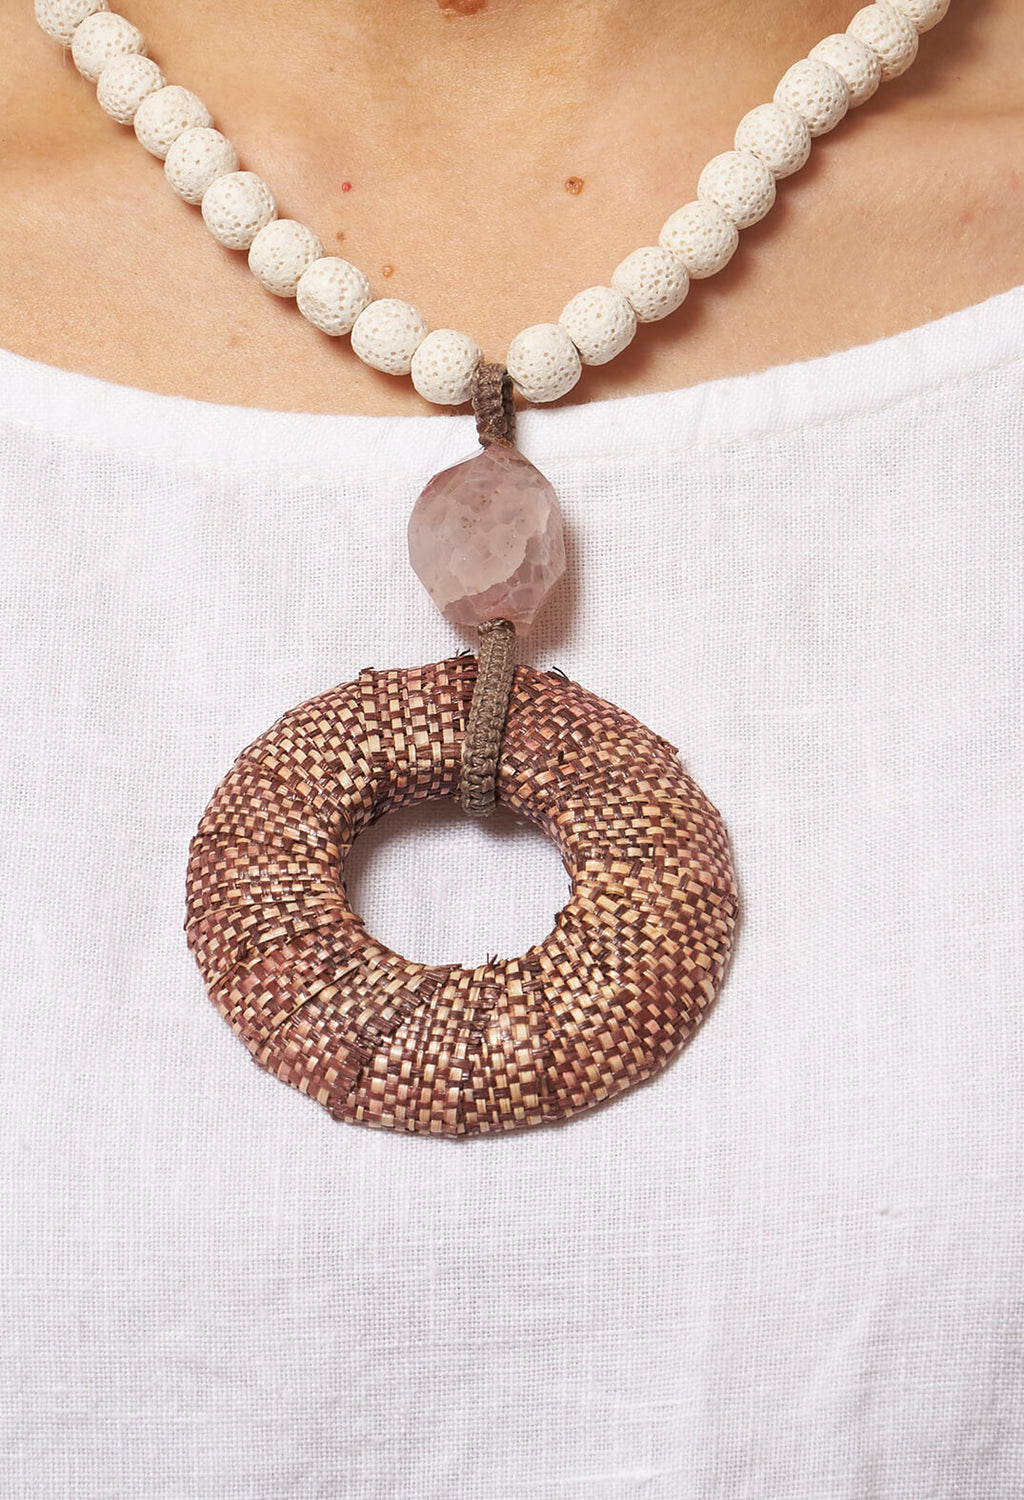 Rounded Pendant Necklace in Off White / Pink